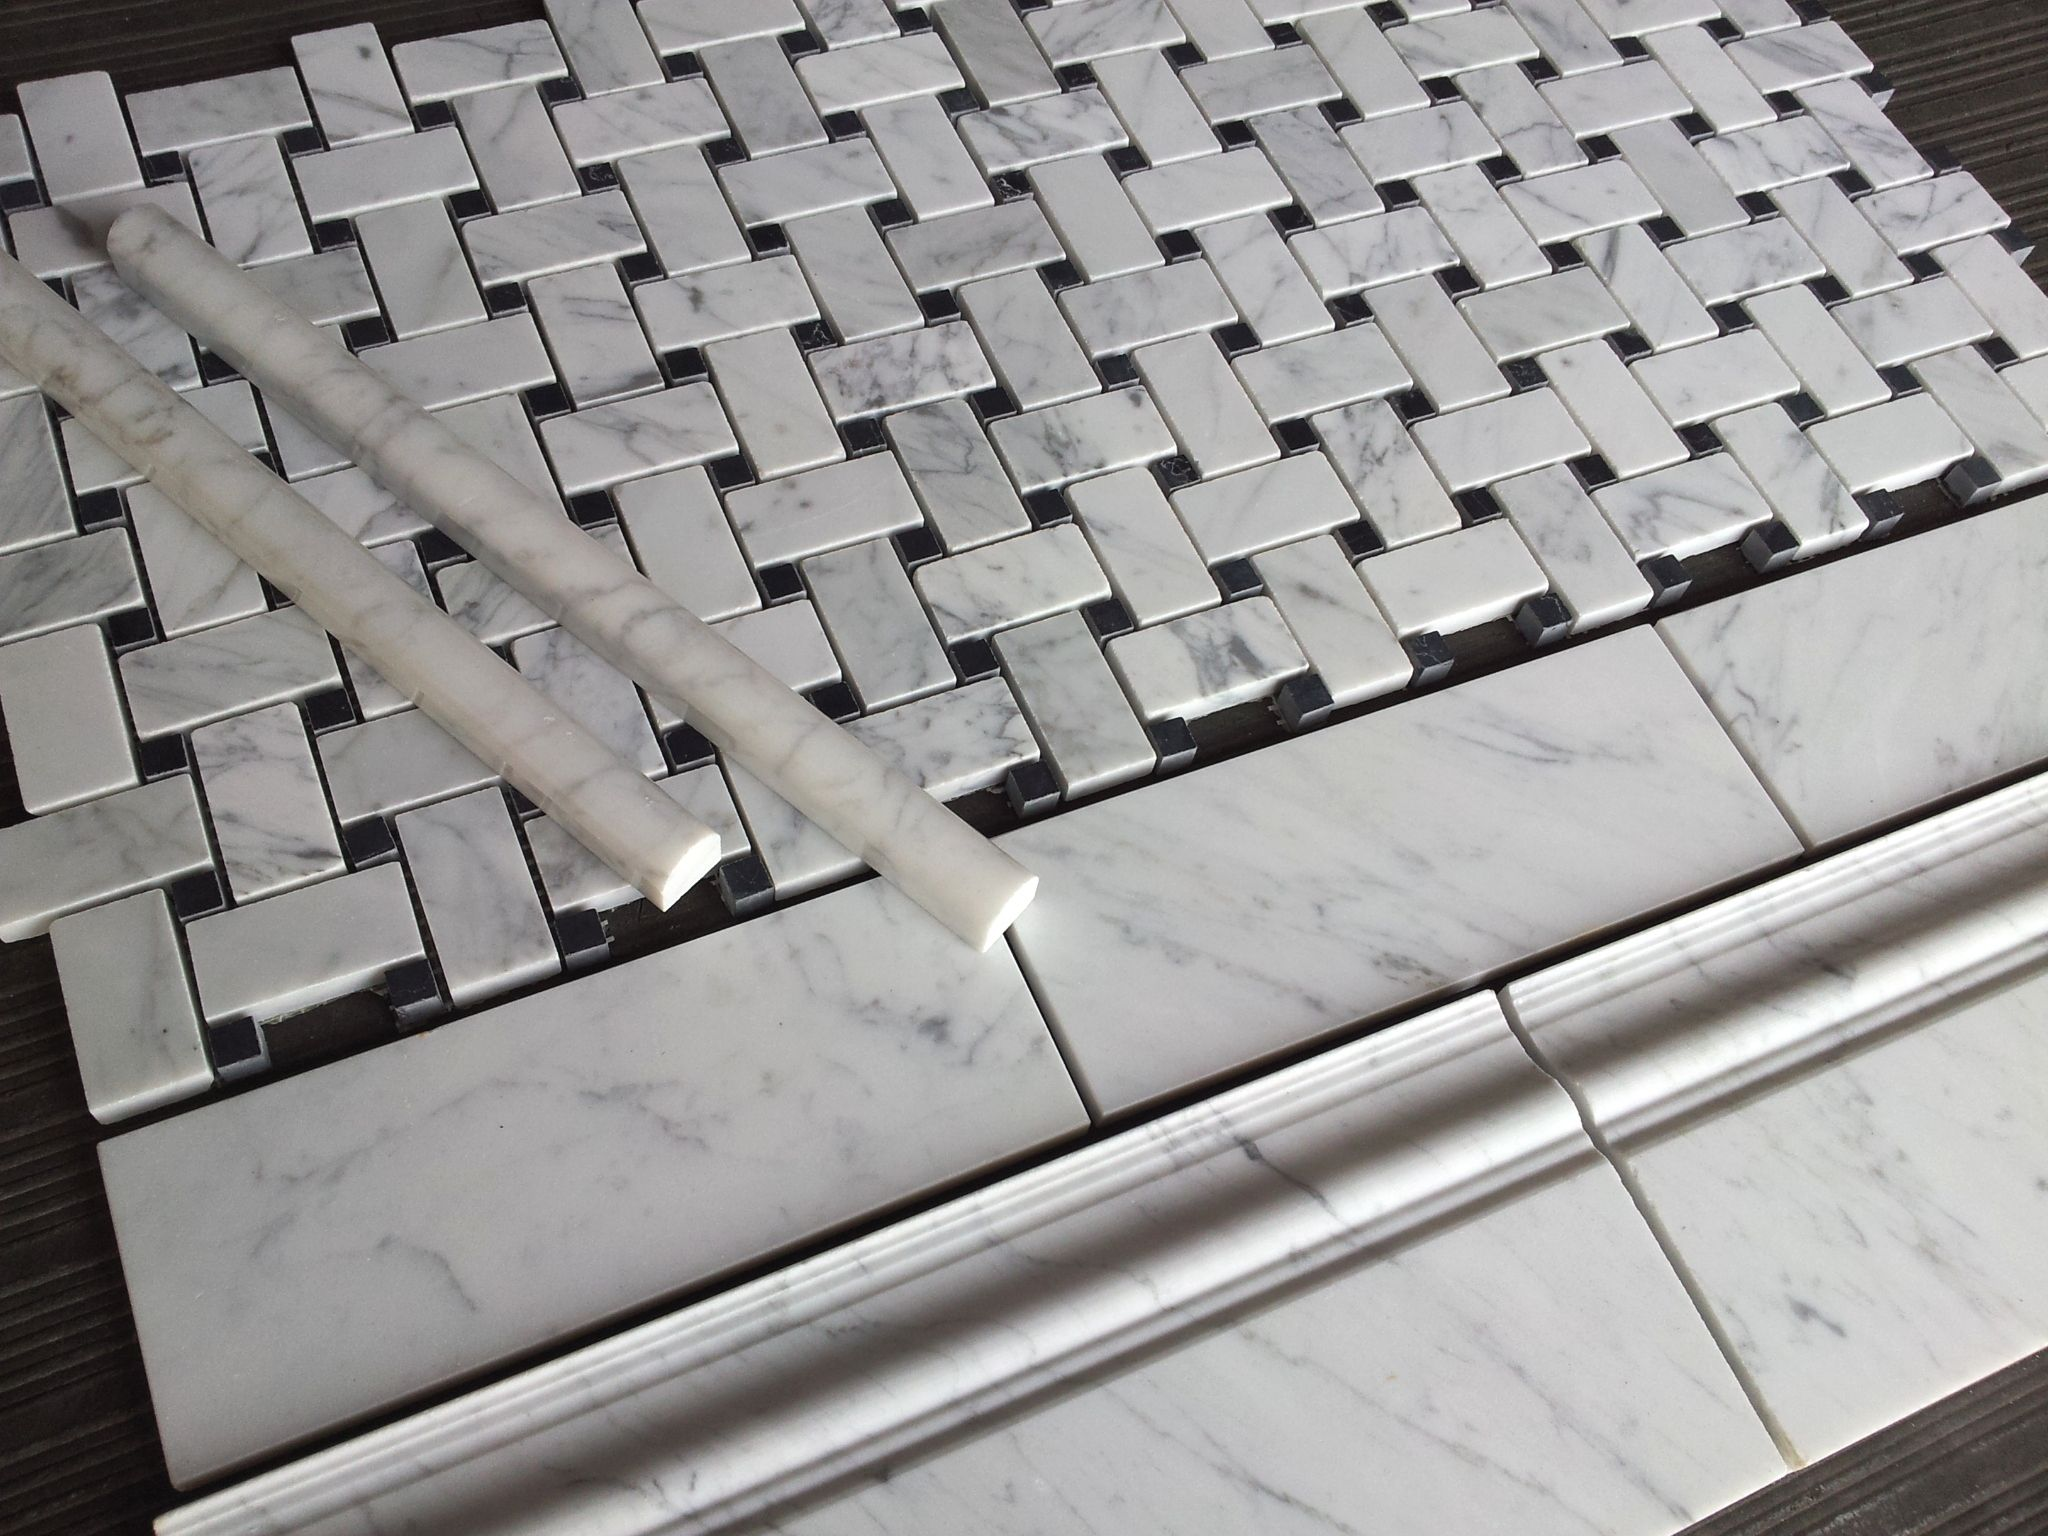 7 50 A Square Foot 3x8 Subway Tile Honed From The Italian Marble